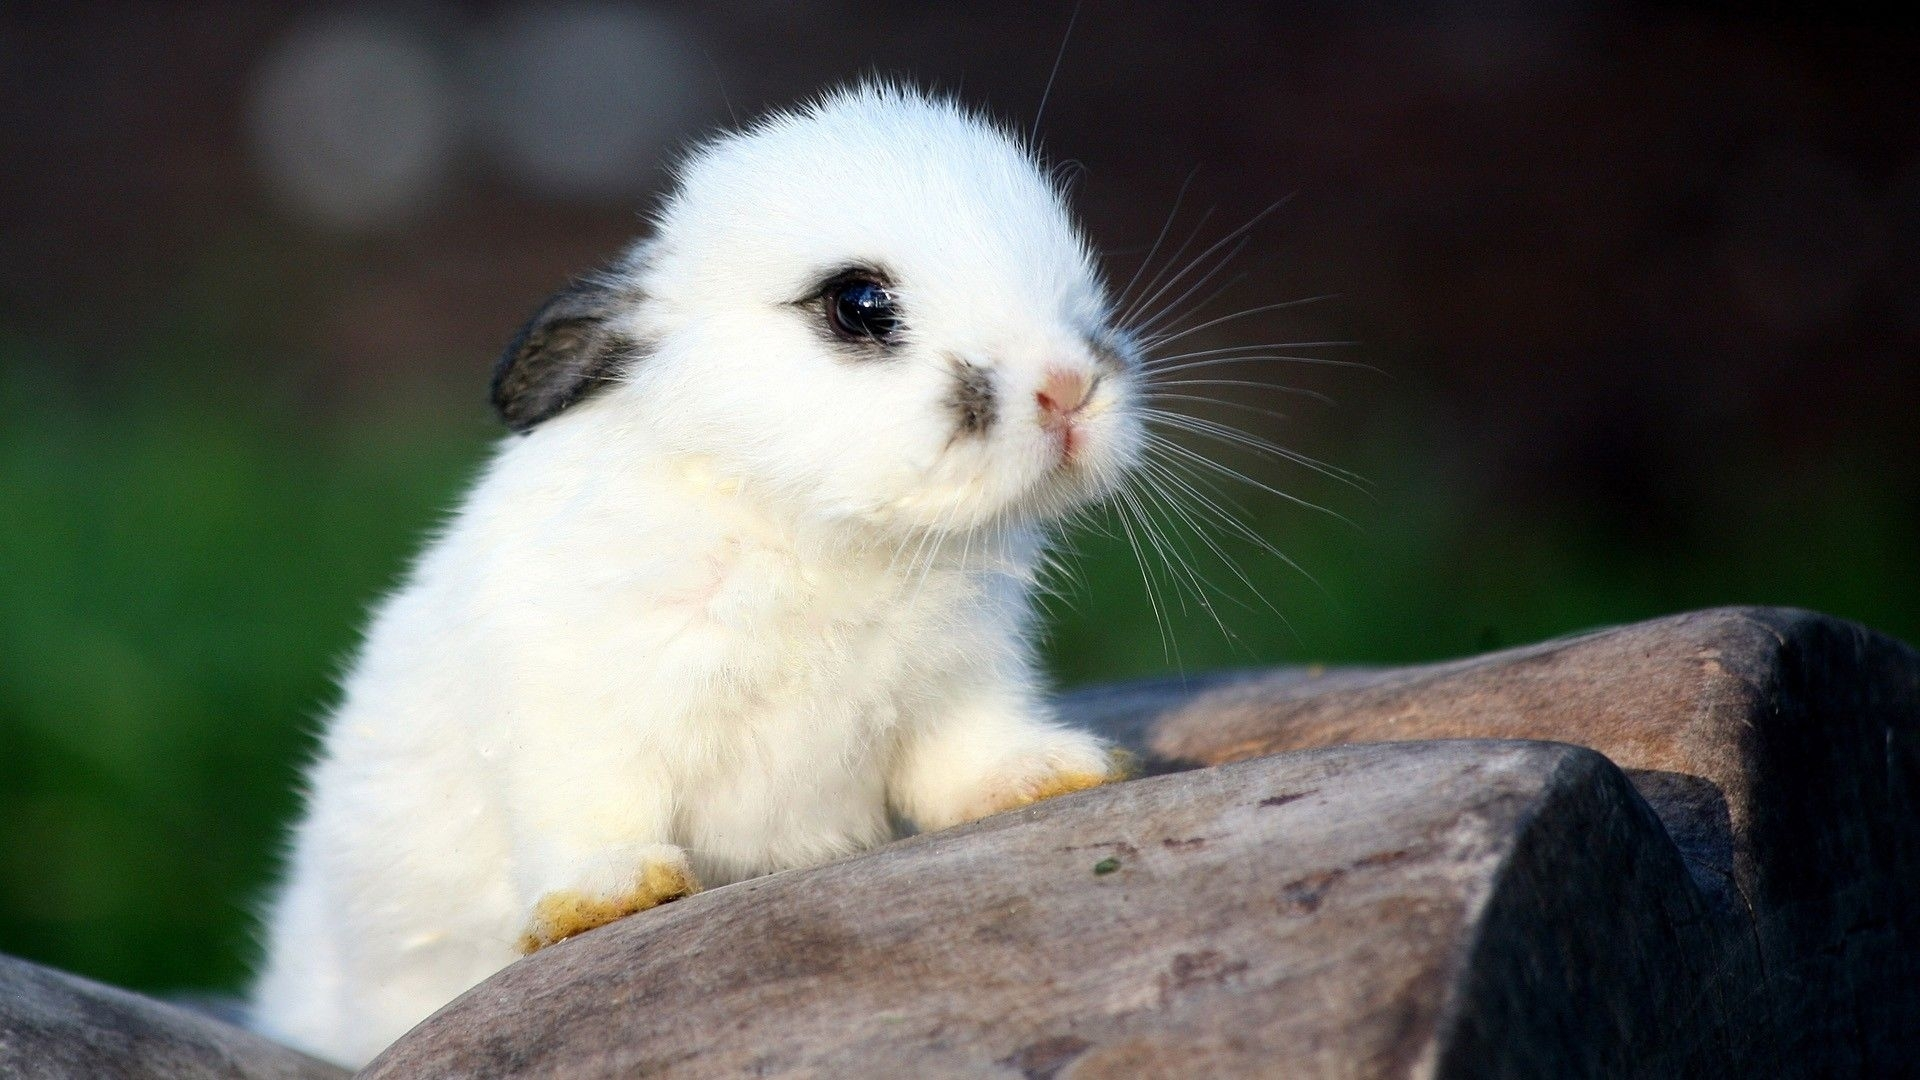 baby animal wallpaper hd images – one hd wallpaper pictures